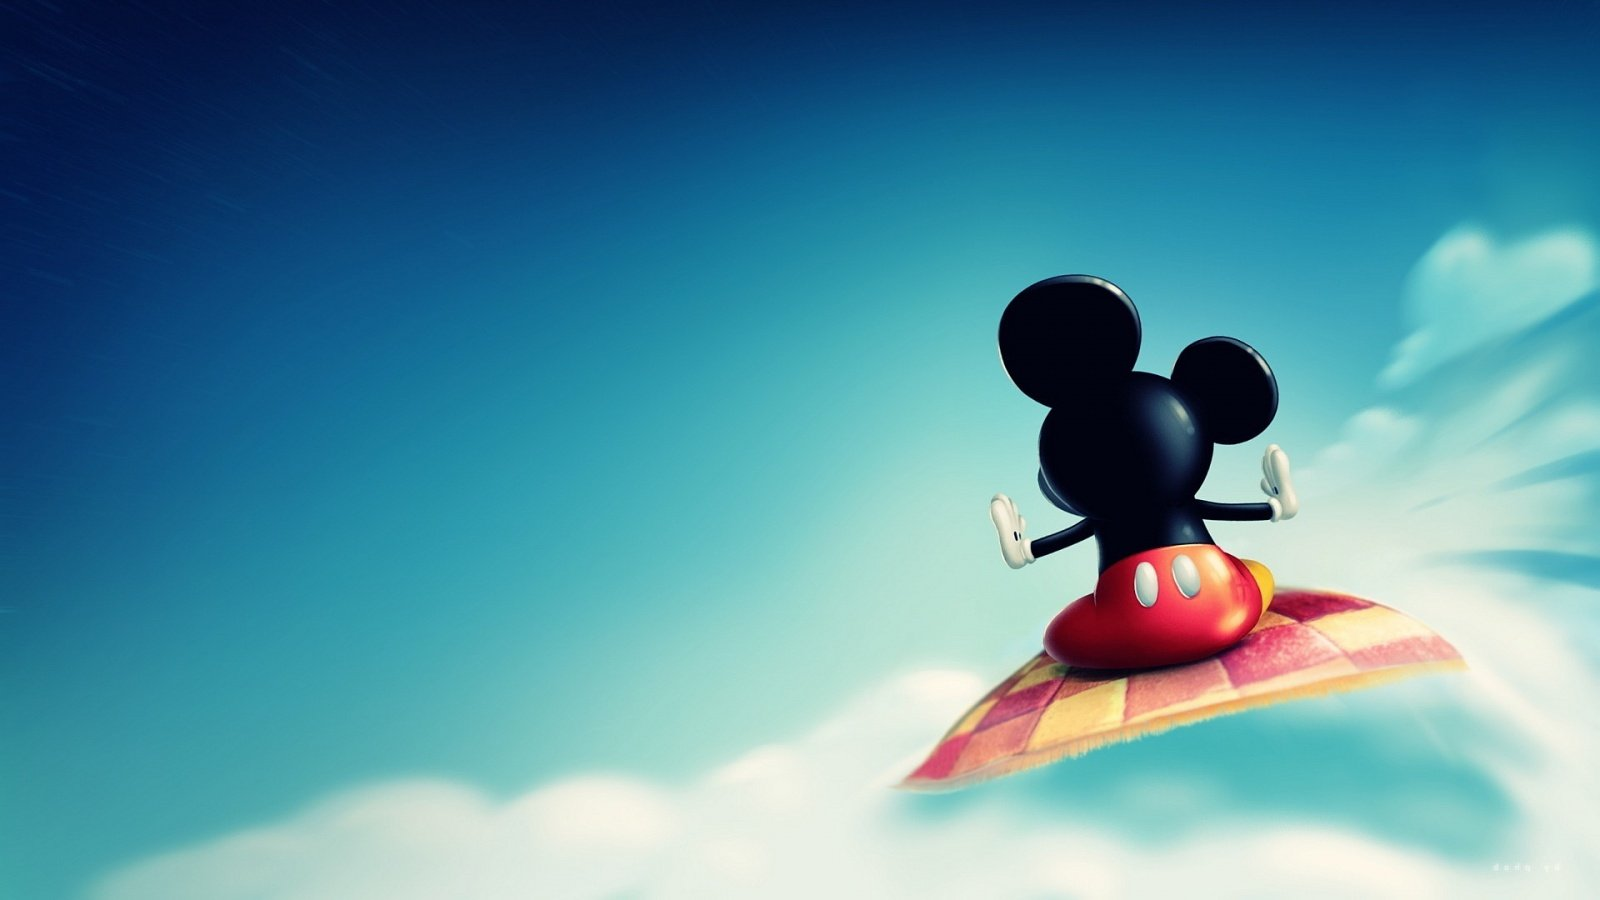 Disney Wallpaper For Ipad Mini Wallpapersafari